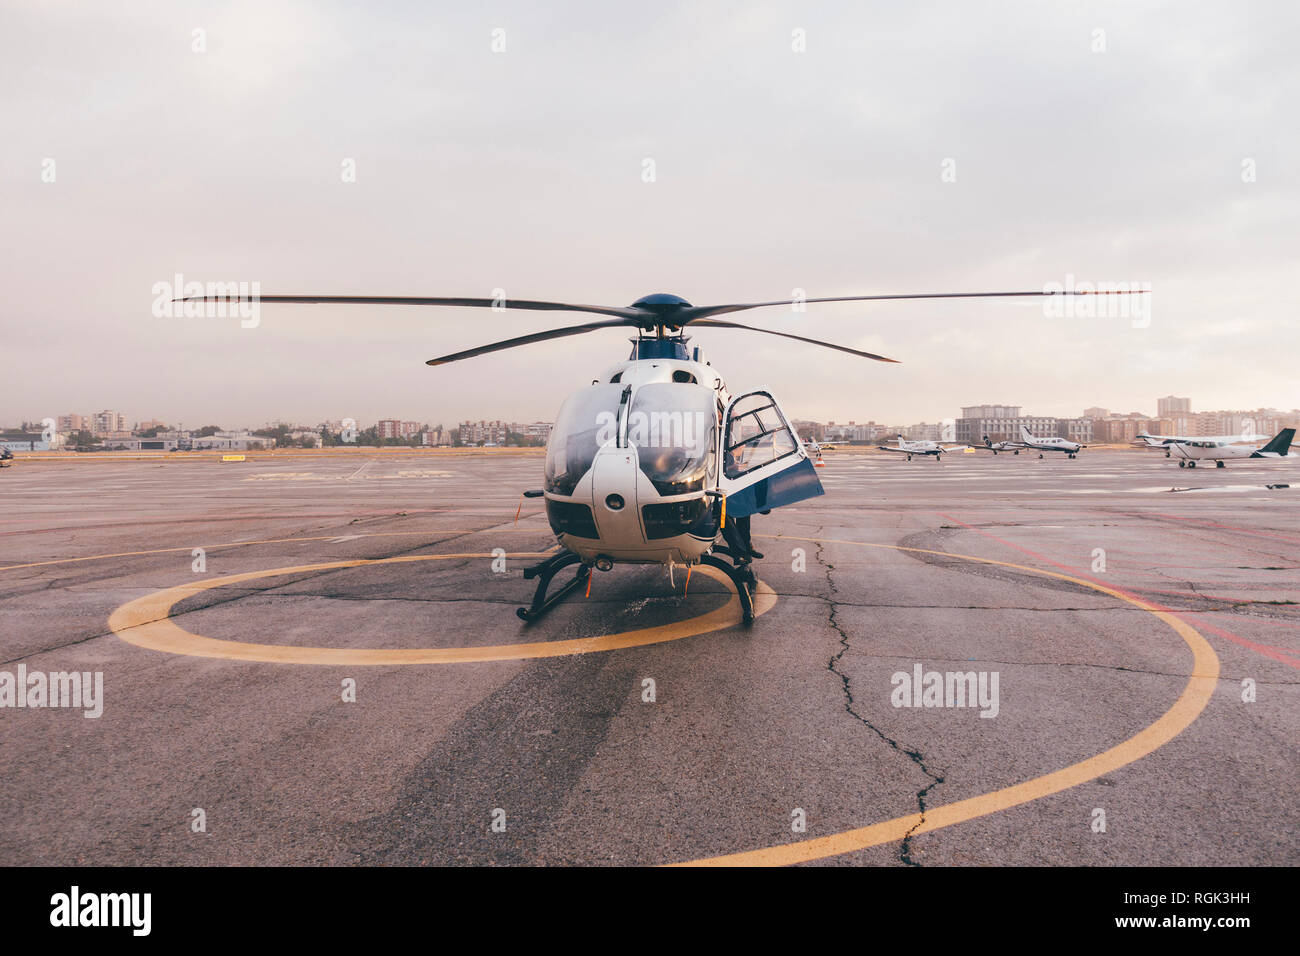 Helicopter on air field Stock Photo